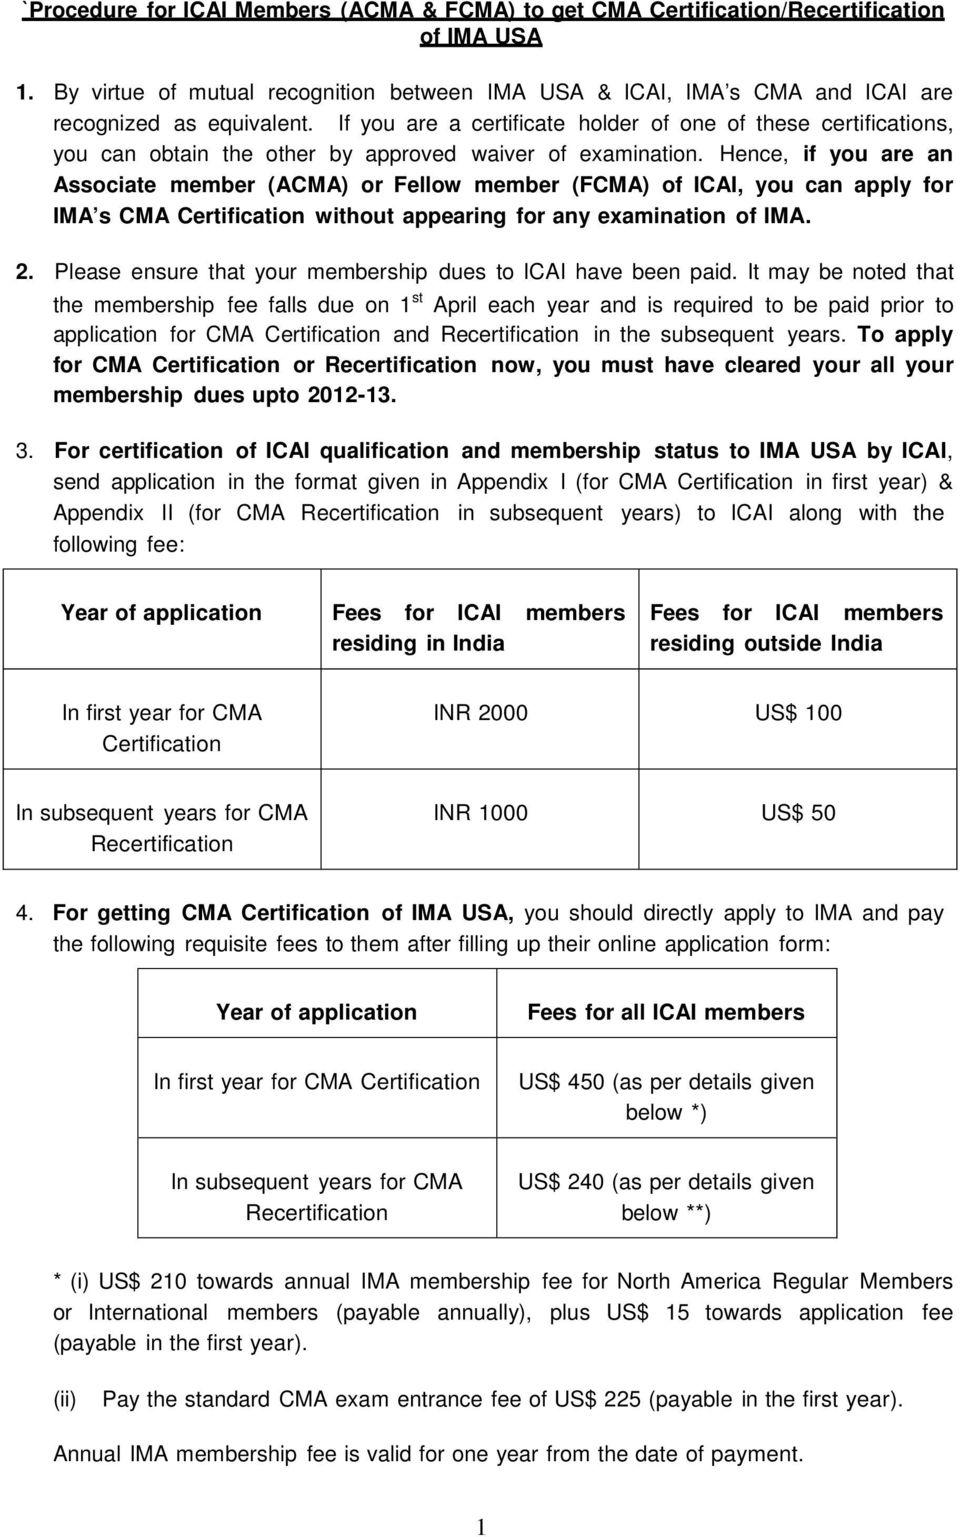 Procedure For Icai Members Acma Fcma To Get Cma Certification